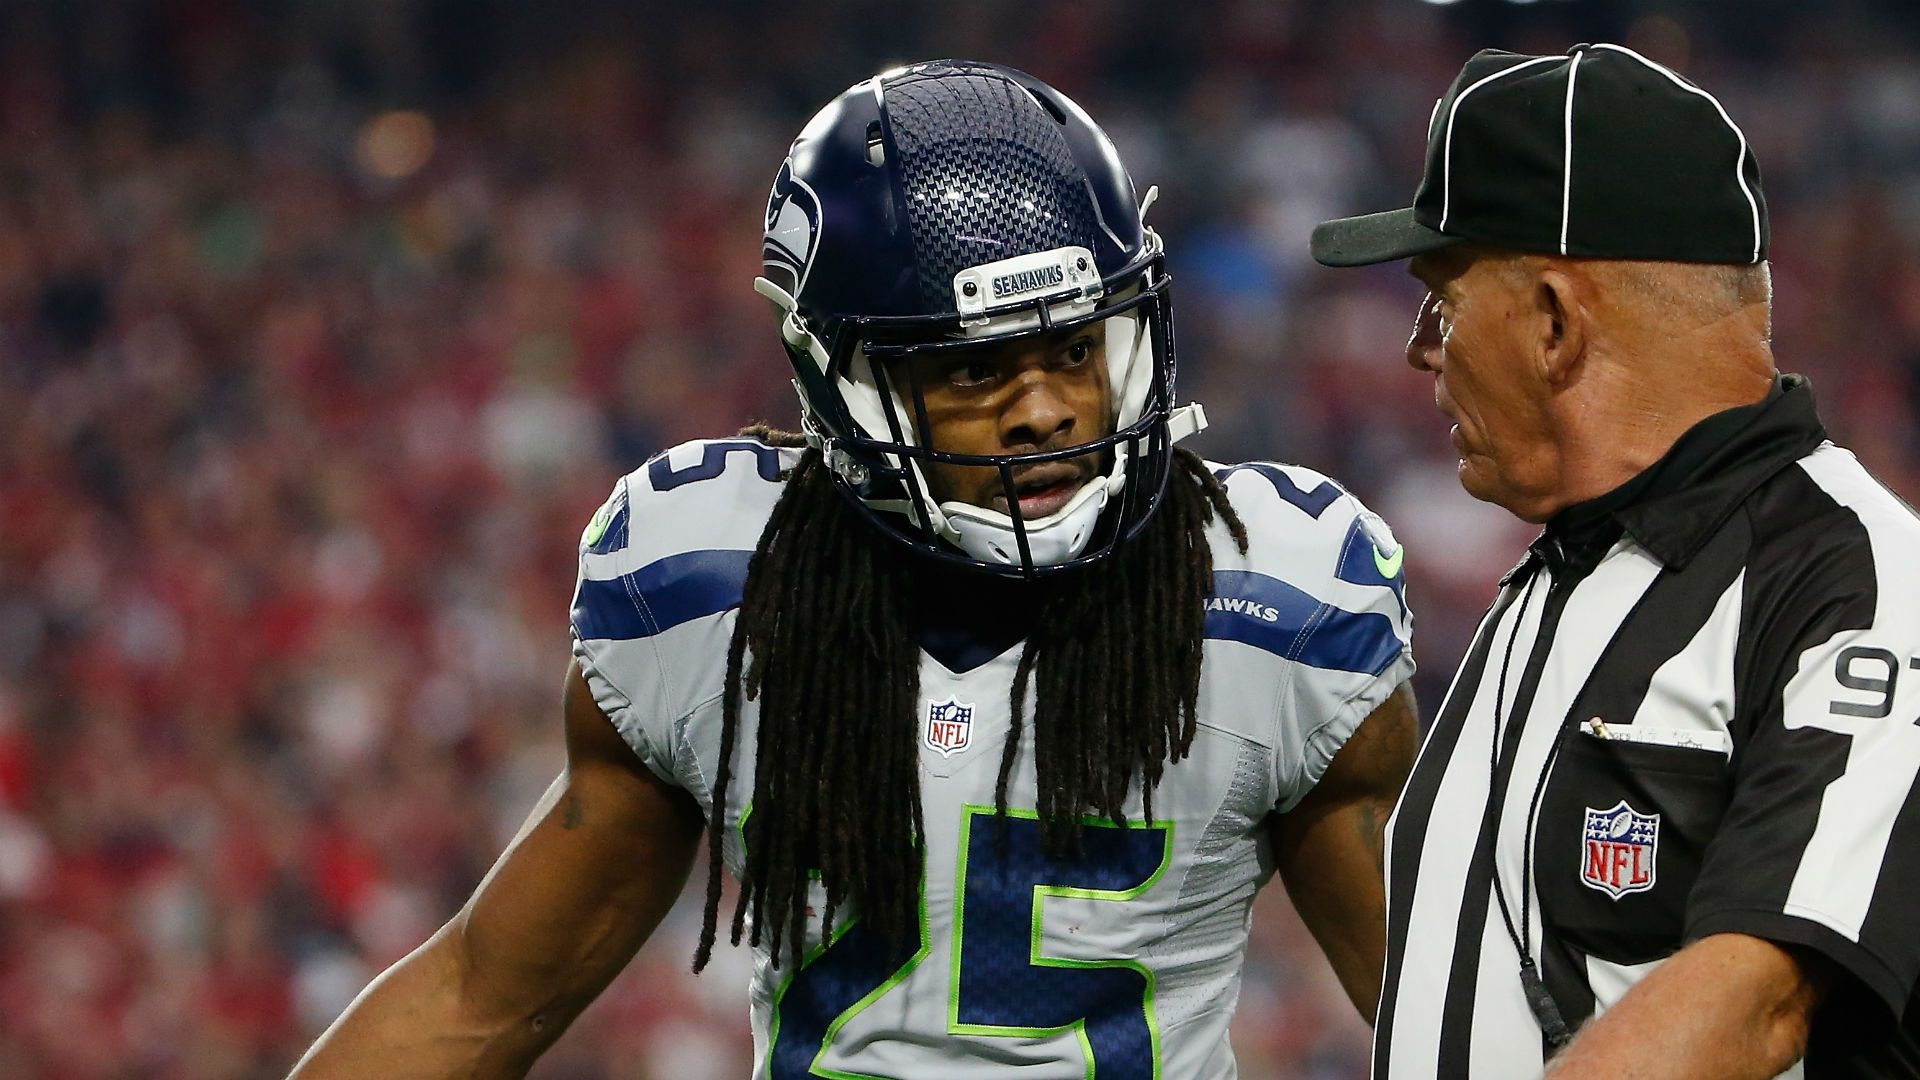 Wanting Richard Sherman castrated says a lot about Kaela Carpenter